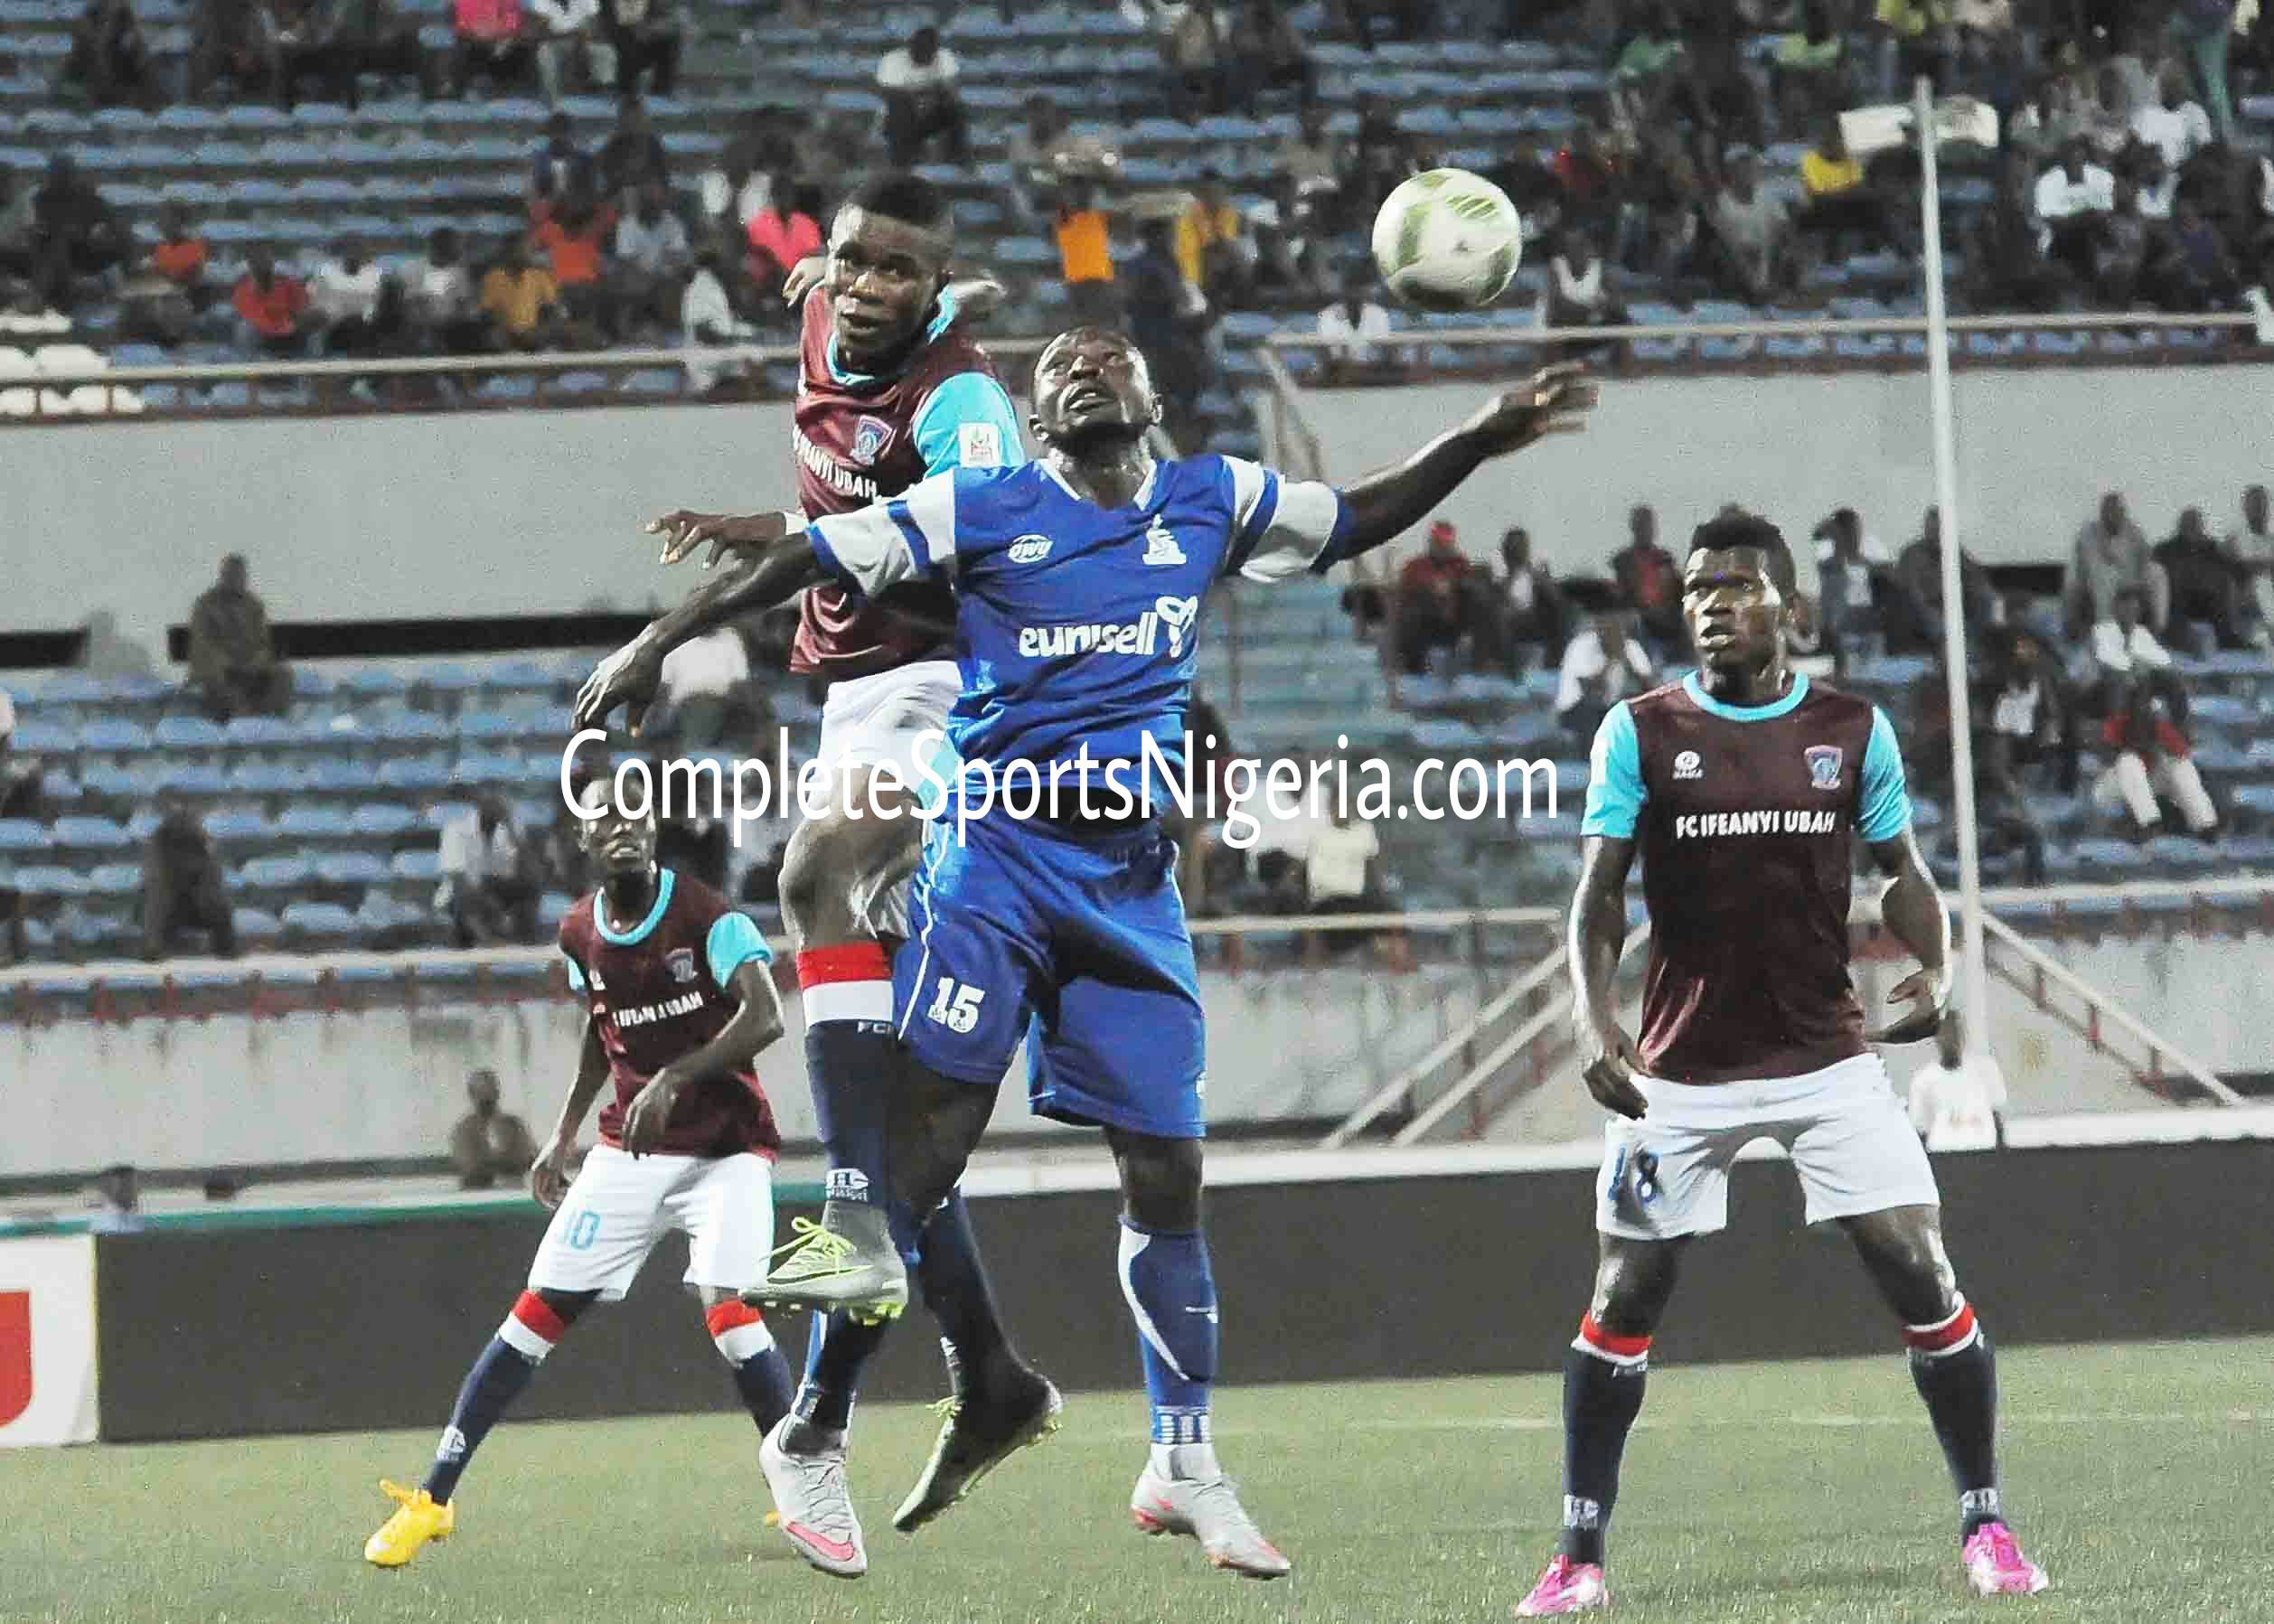 NPFL: Enyimba, Pillars In Heavyweight Clash As Rangers, Rivers Chase Survival